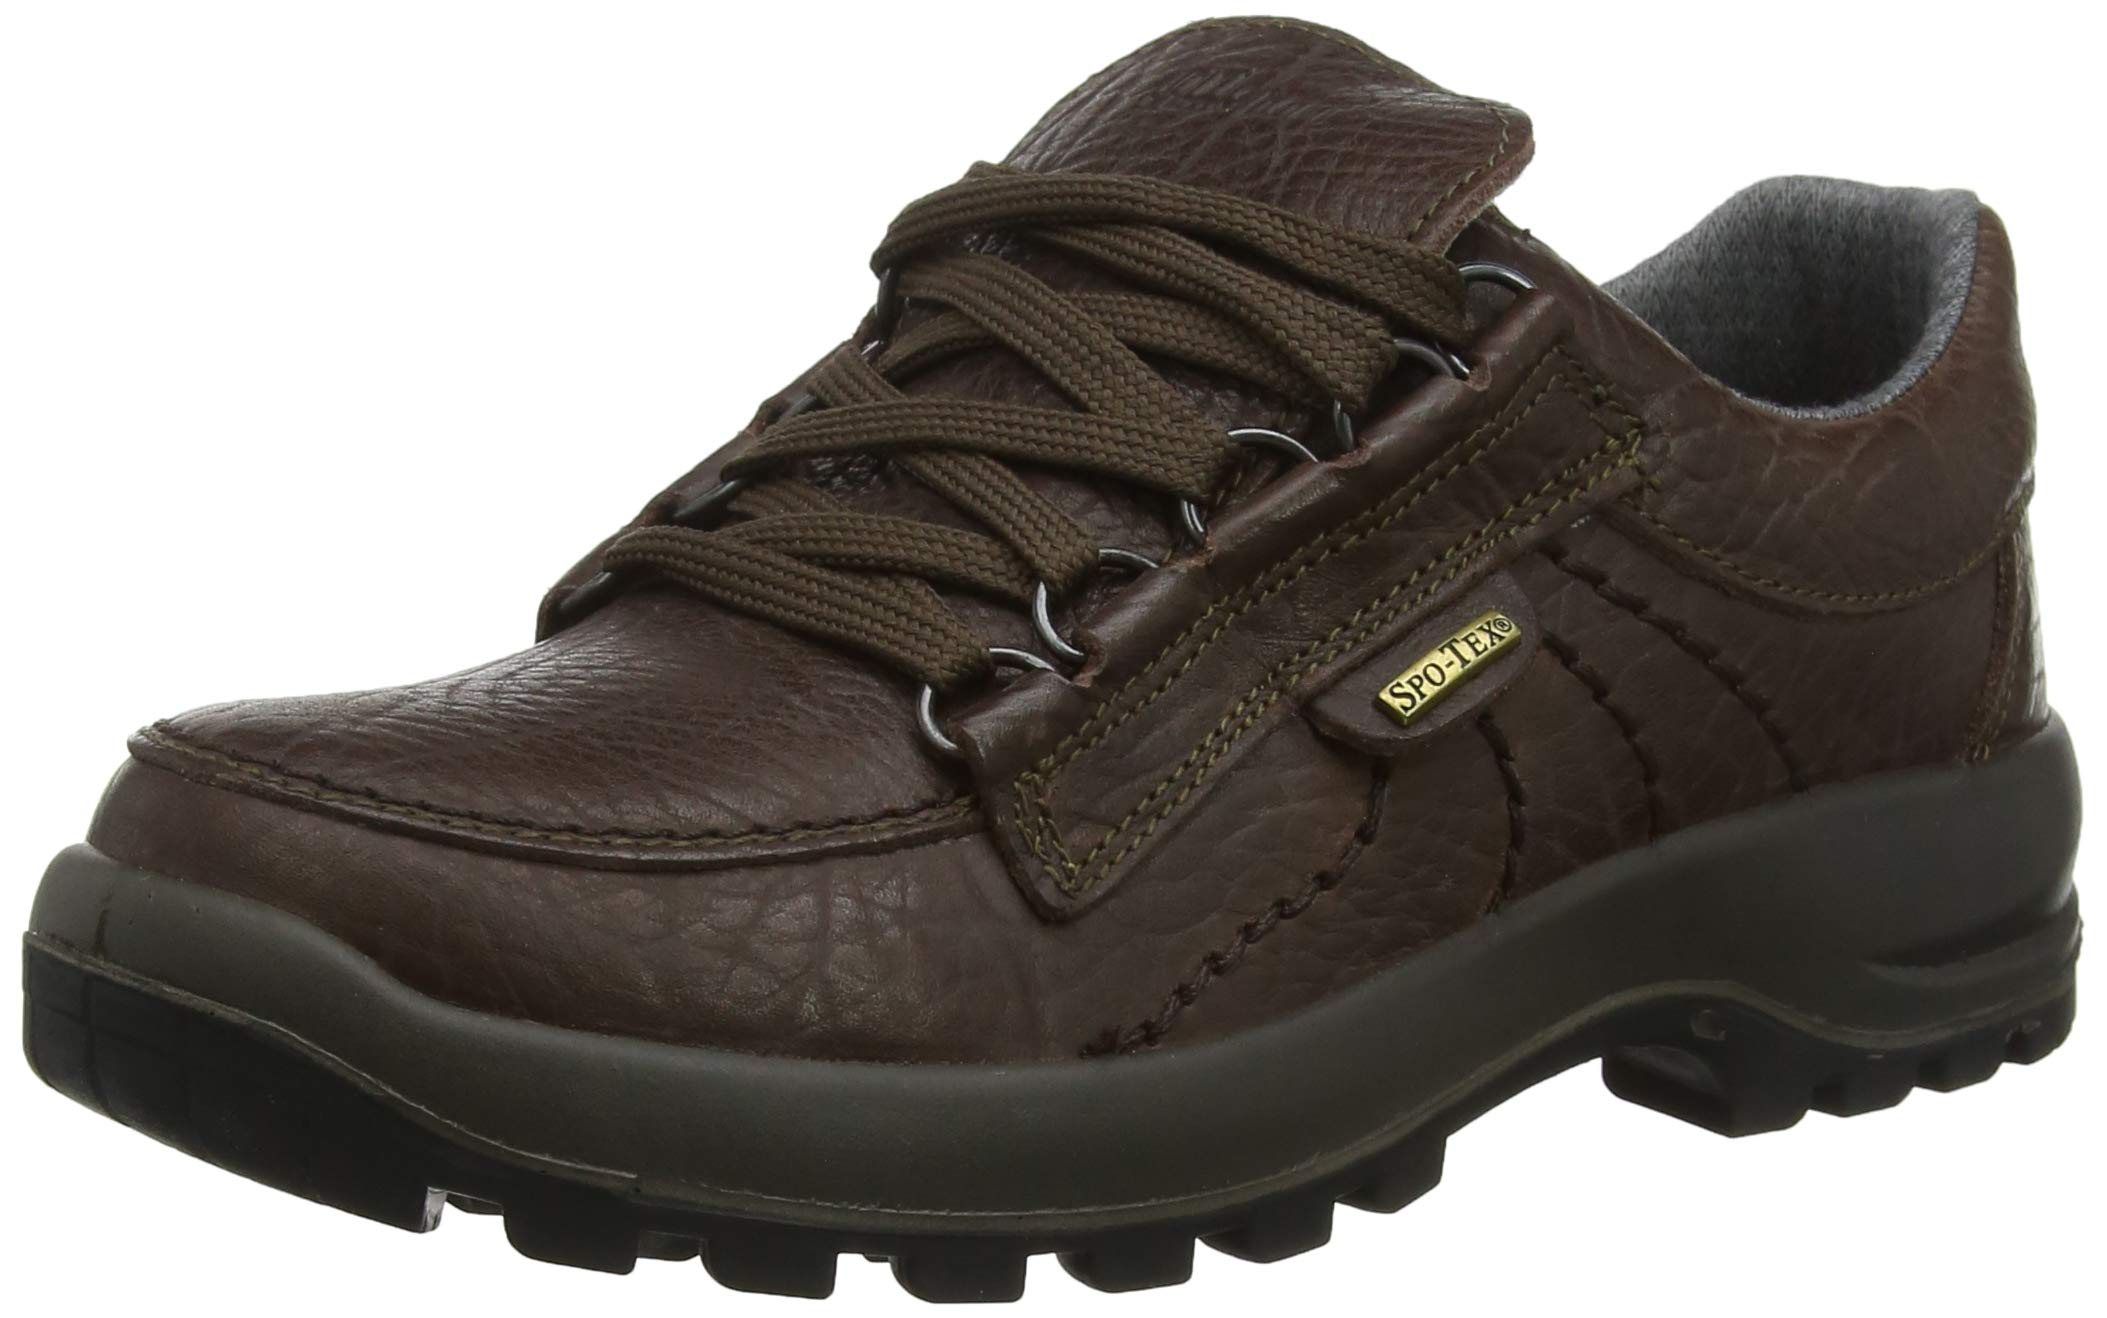 Grisport Adults Kielder Shoe Low Rise Hiking Boots 1